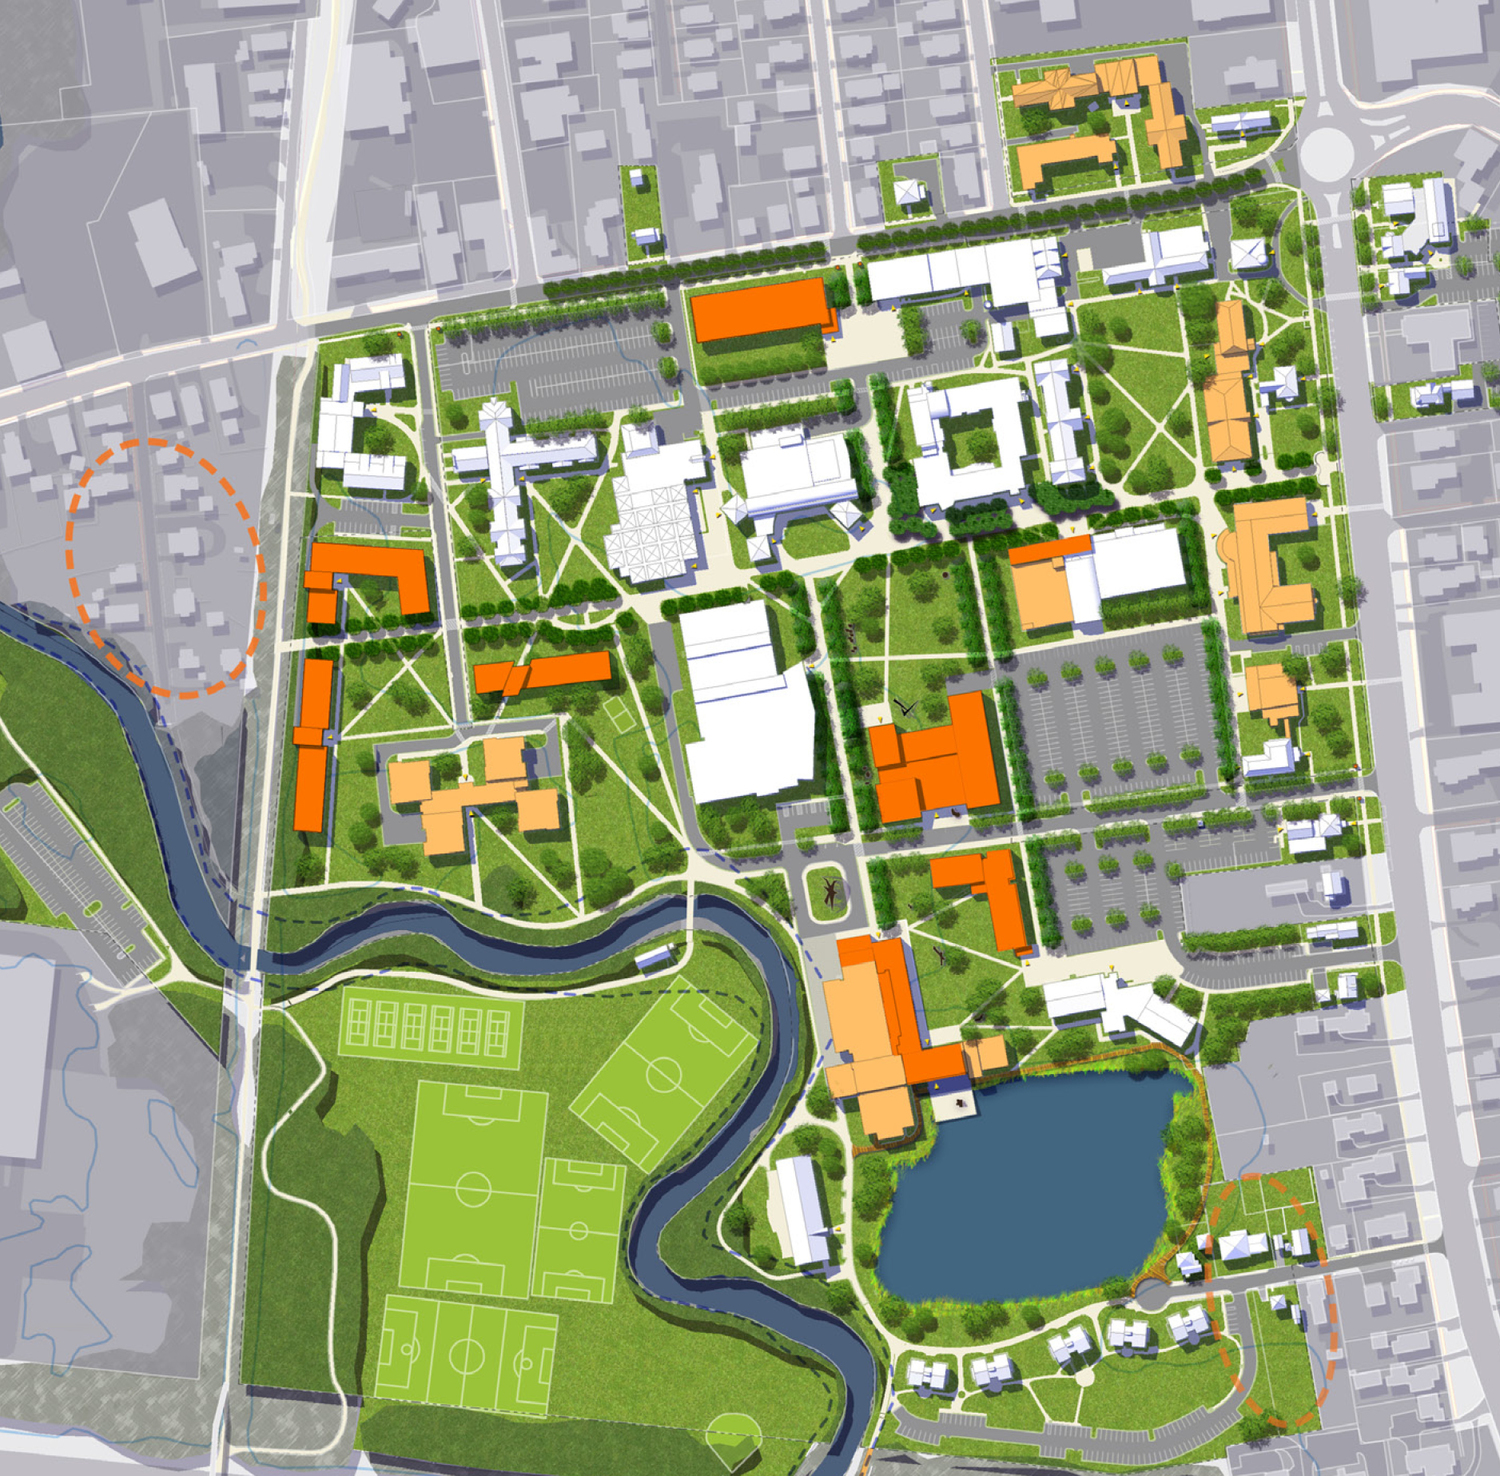 Keene State College Campus Master Plan — Hedlund Design Group on penn college map, downtown state college map, smith college area map, united states area map, keene nh, castleton state college map, georgetown university area map, illinois state university area map, concord area map, fairfield university area map, princeton university area map, new hampshire area map, calder commons state college on map, penn state altoona area map, keene city map, colgate university area map, farmingdale state college campus map, keene ky, state college pennsylvania map, lebanon area map,